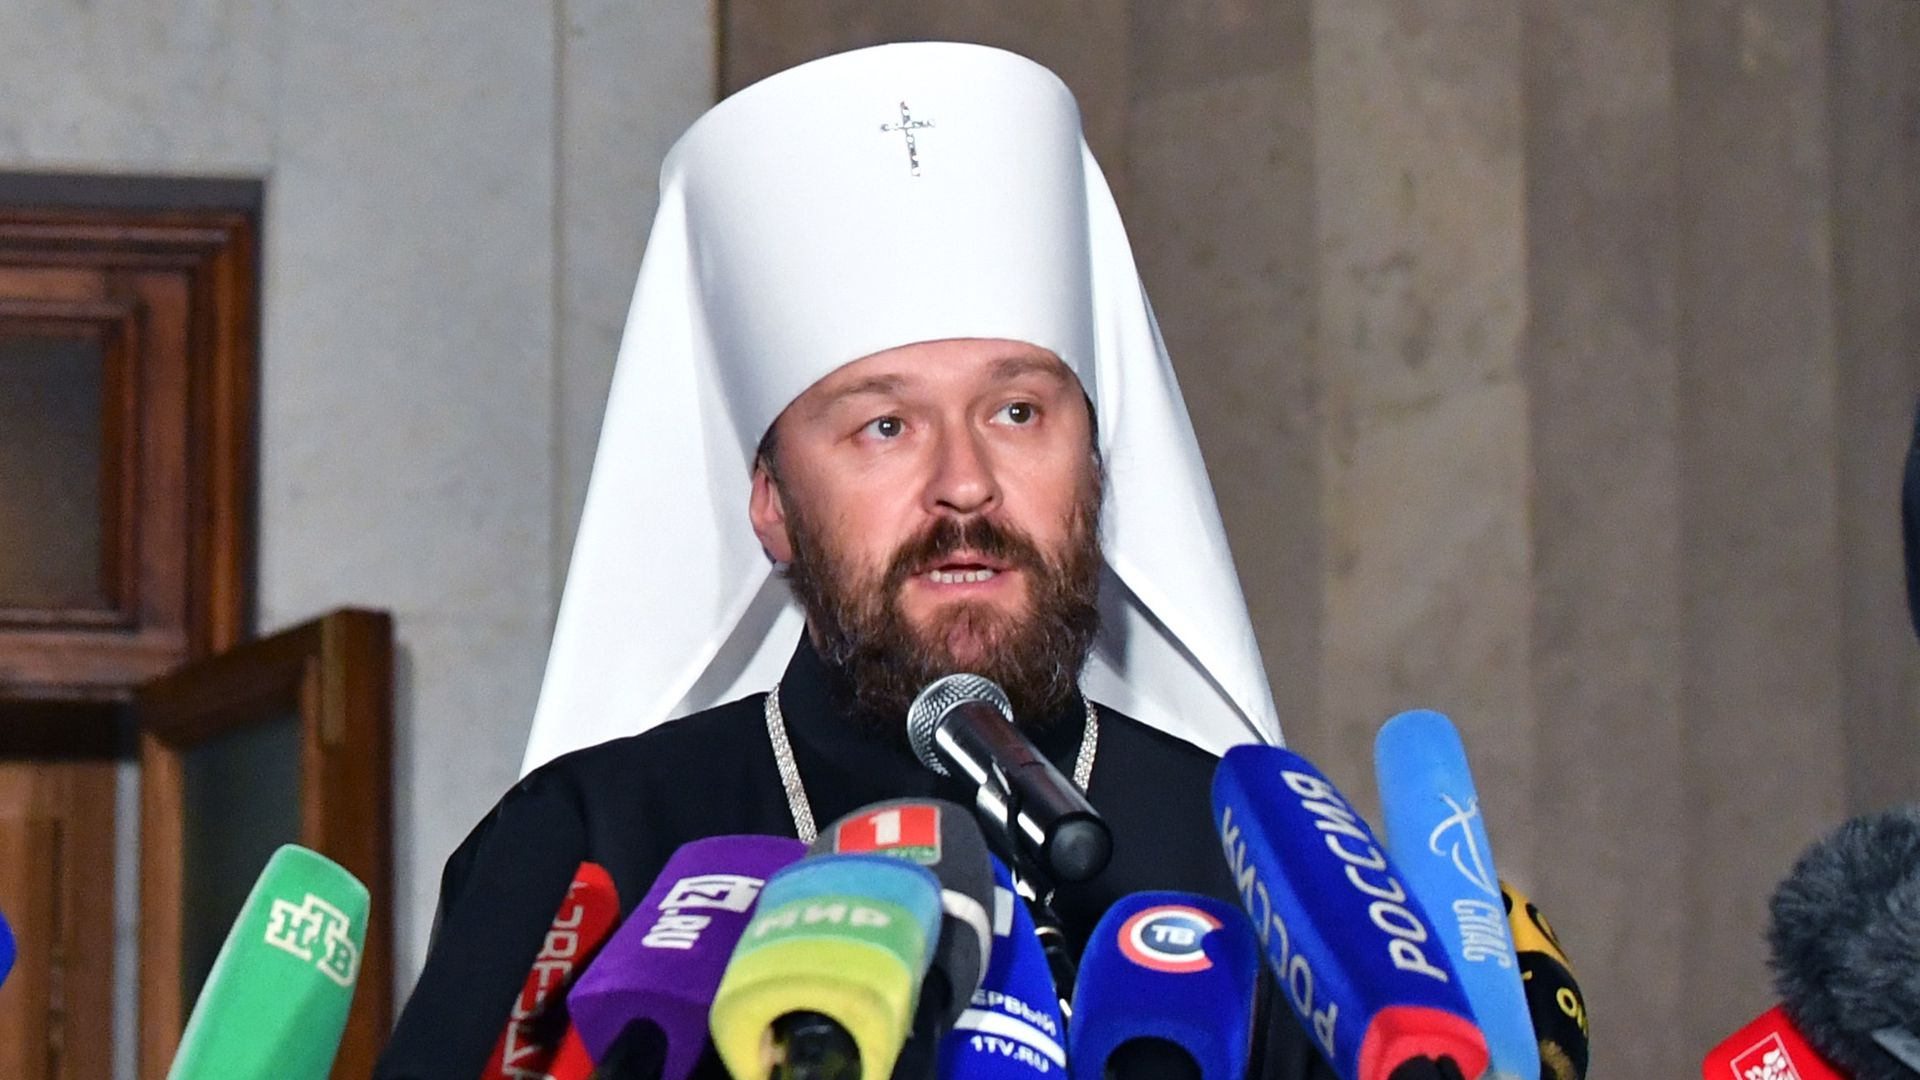 Metropolitan Hilarian, chairman of the Department for External Church Relations of the Moscow Patriarchate. Photo: Viktor Drachev\TASS via Getty Images